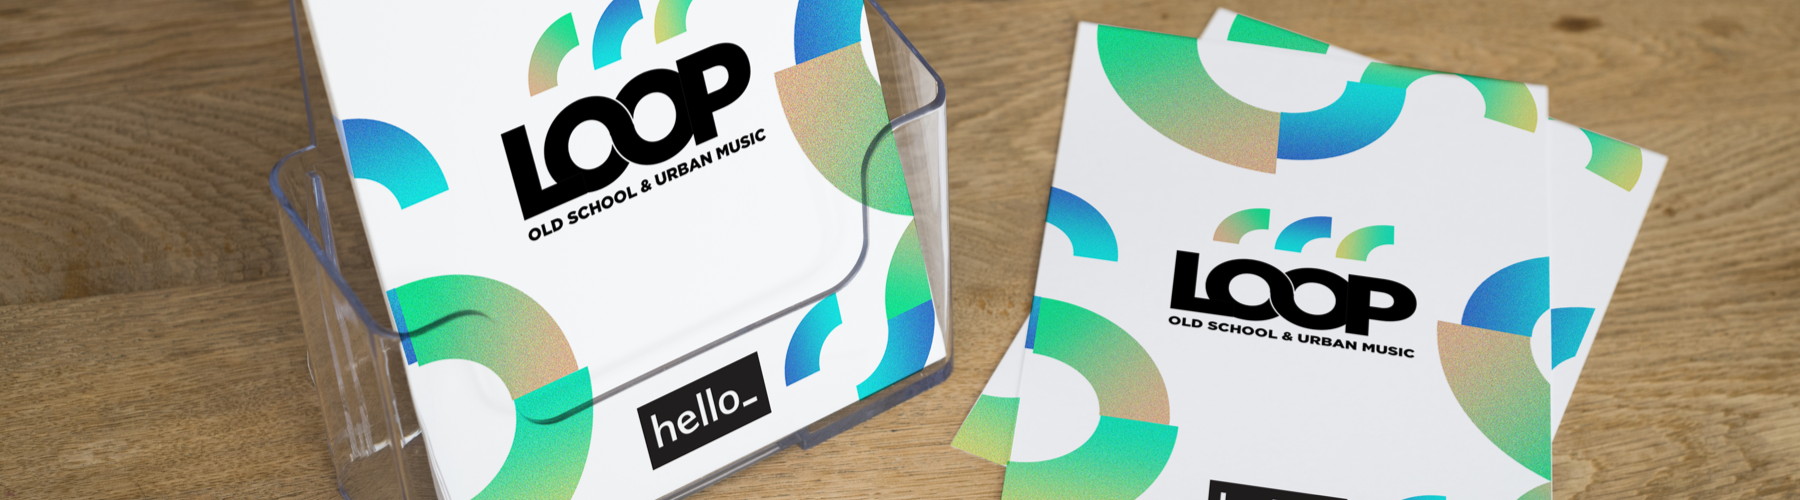 [3 Reasons] Why You Should Be Using Printed Flyers As Part of Your Marketing Strategy in 2021